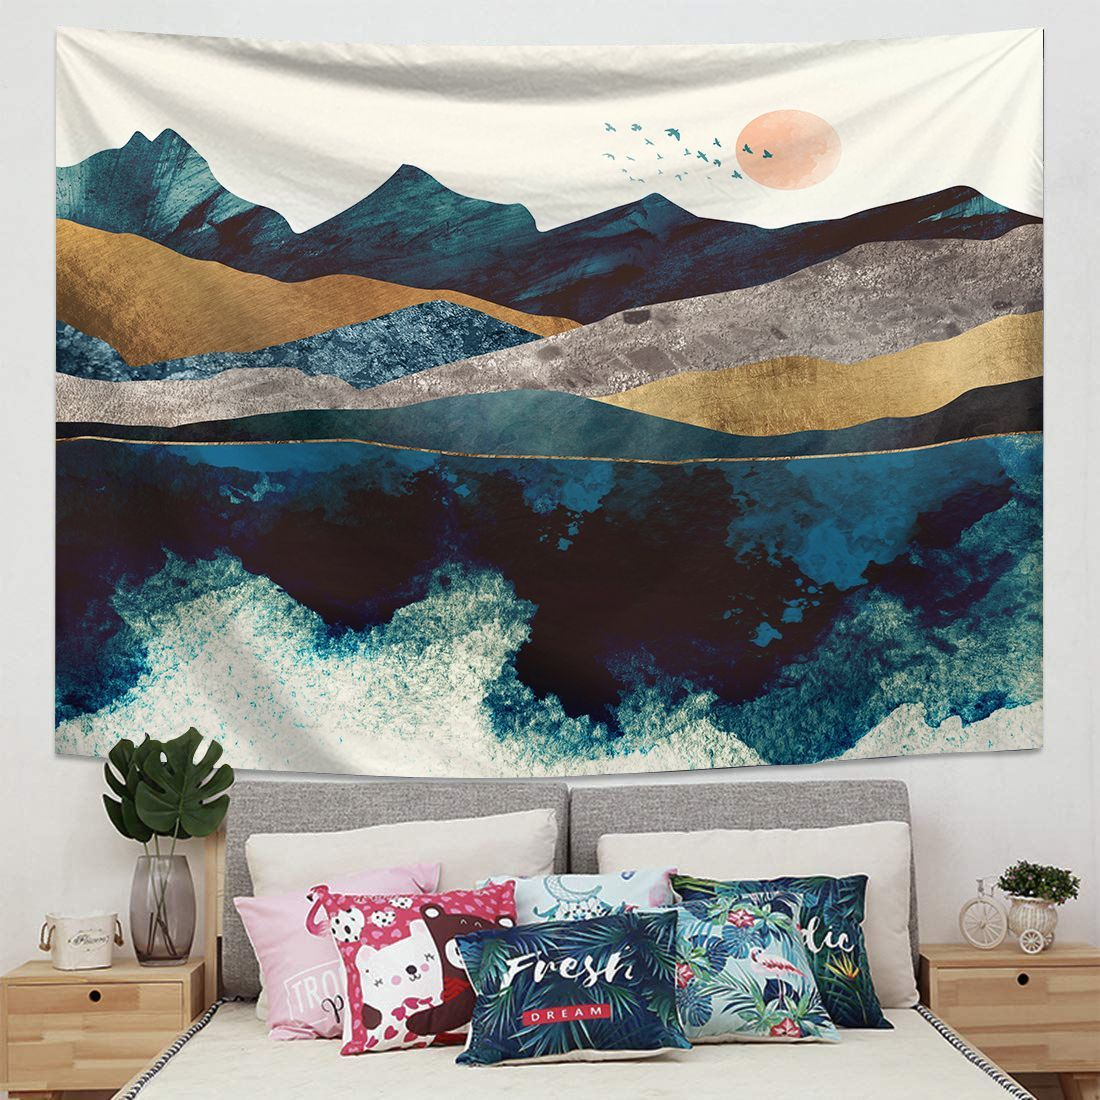 Wall Hanging Tapestry Wall Backdrop Room Decoration Tapestry Wall Background